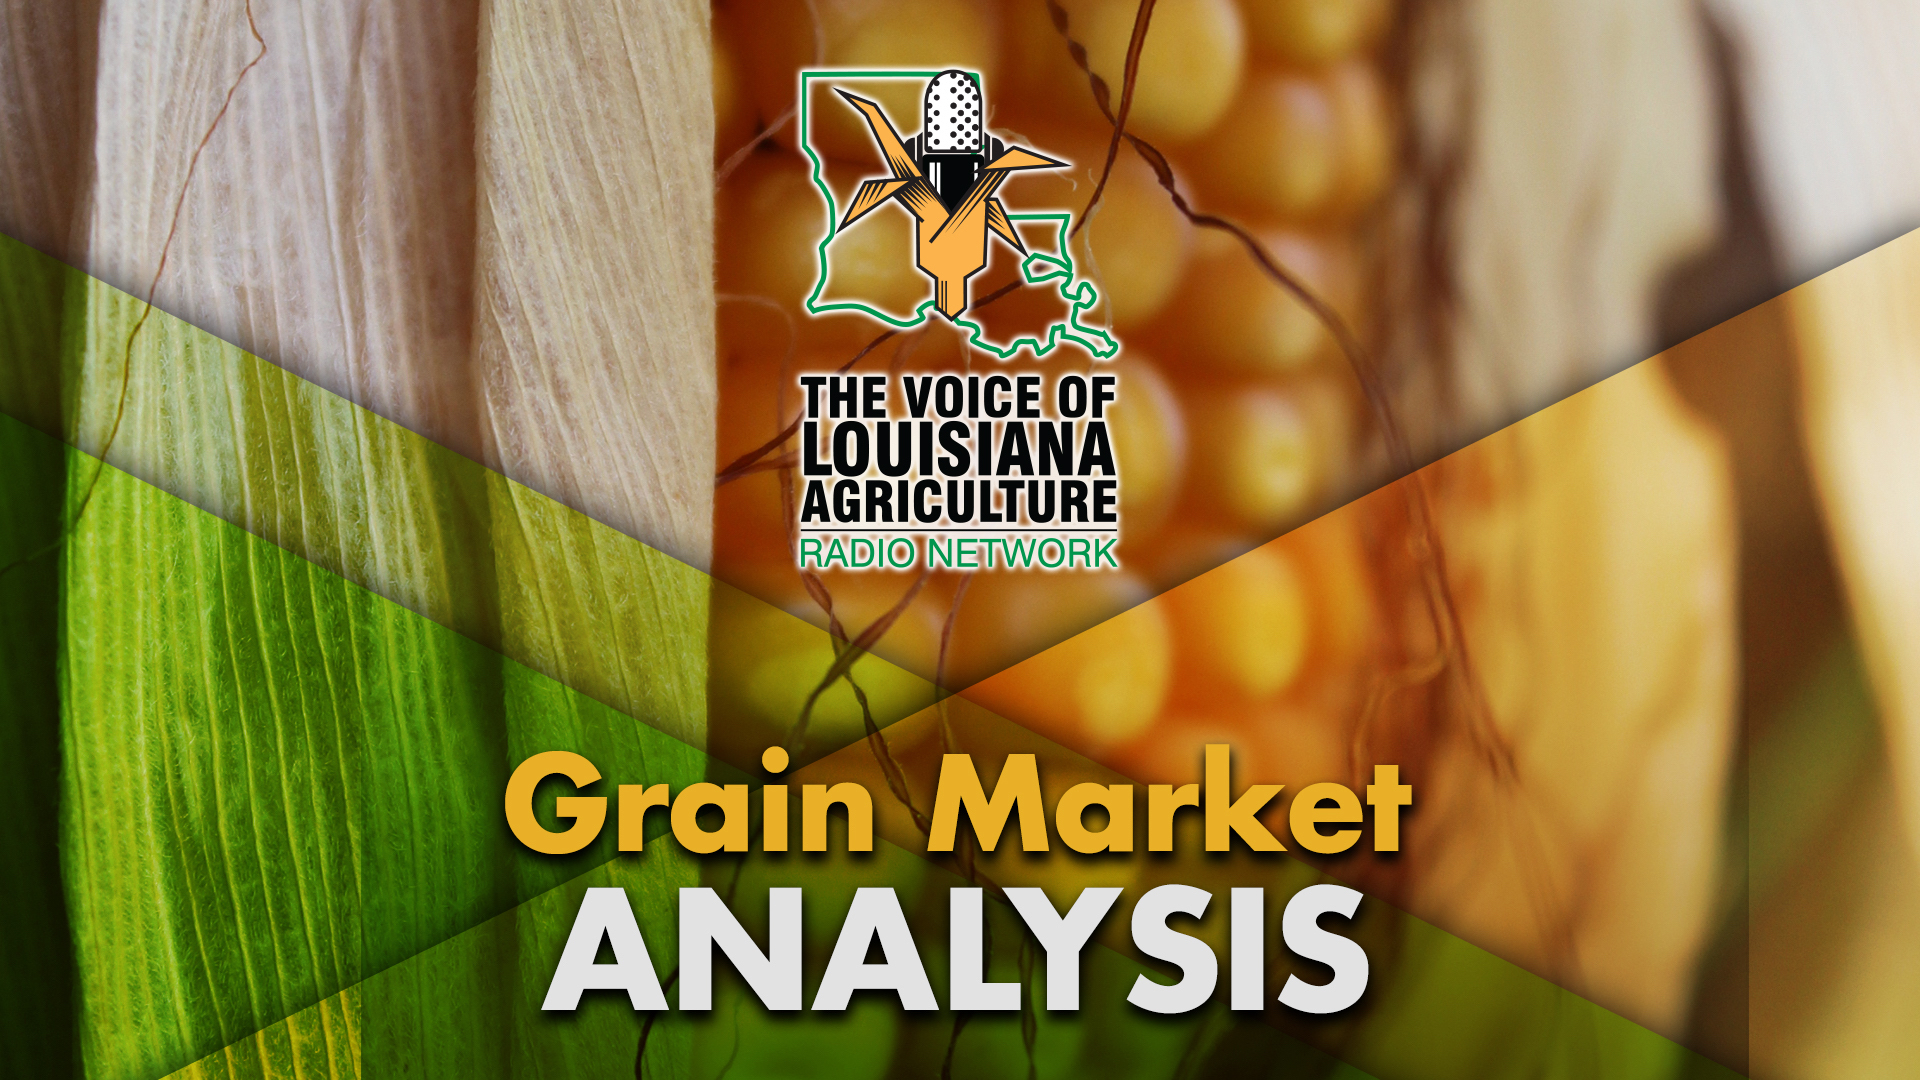 The Closing Market Report on the Voice of Louisiana Agriculture Radio Network